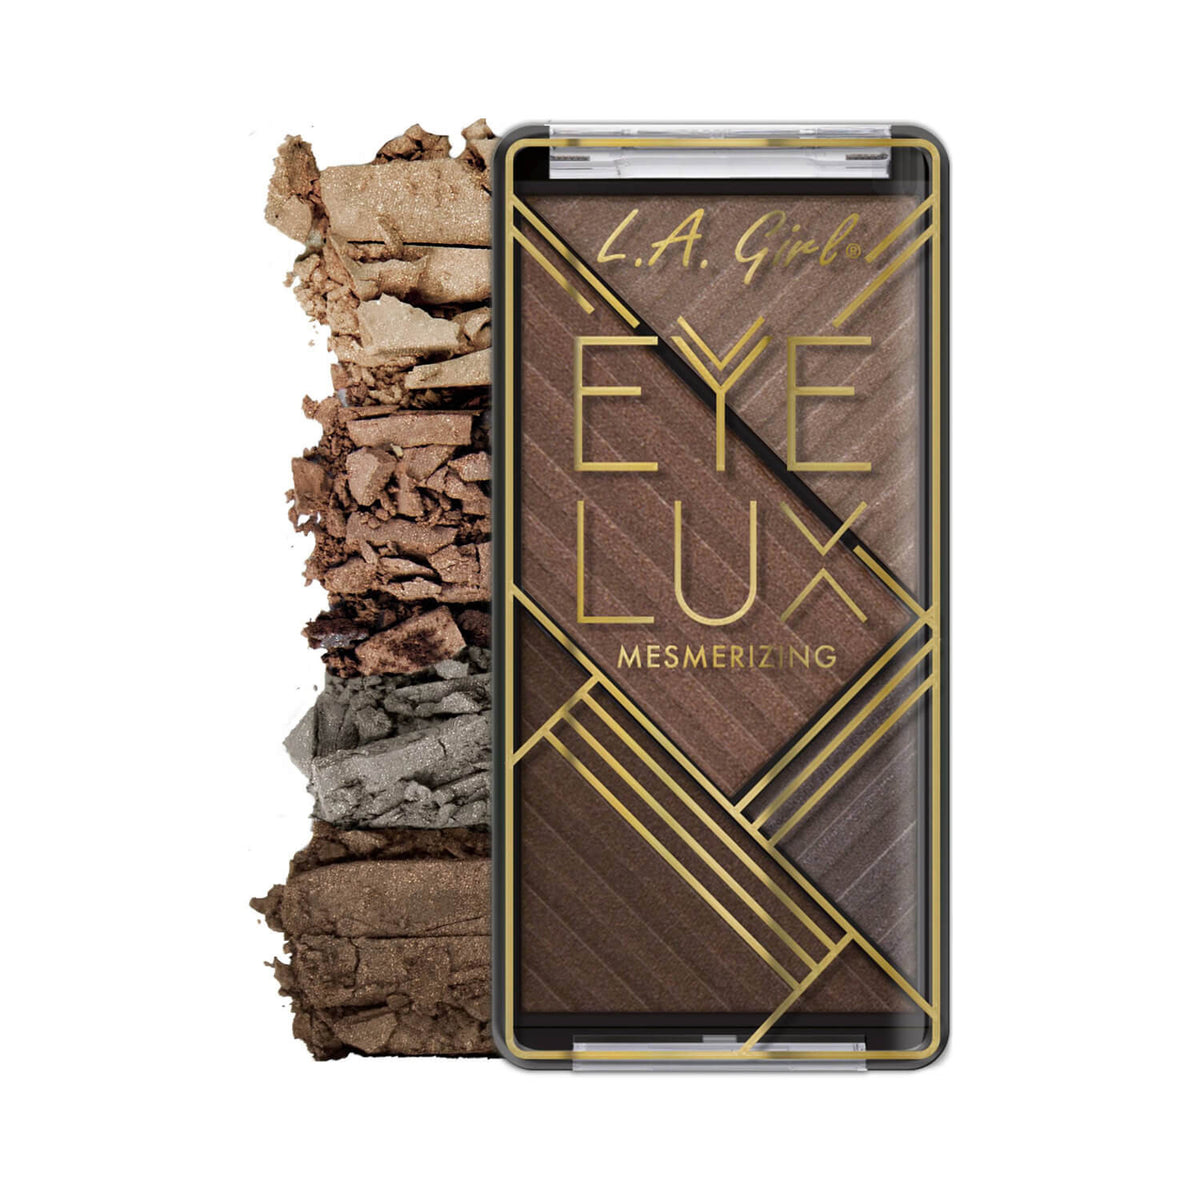 LA Girl Eye Lux Eyeshadow GES467 Socialize